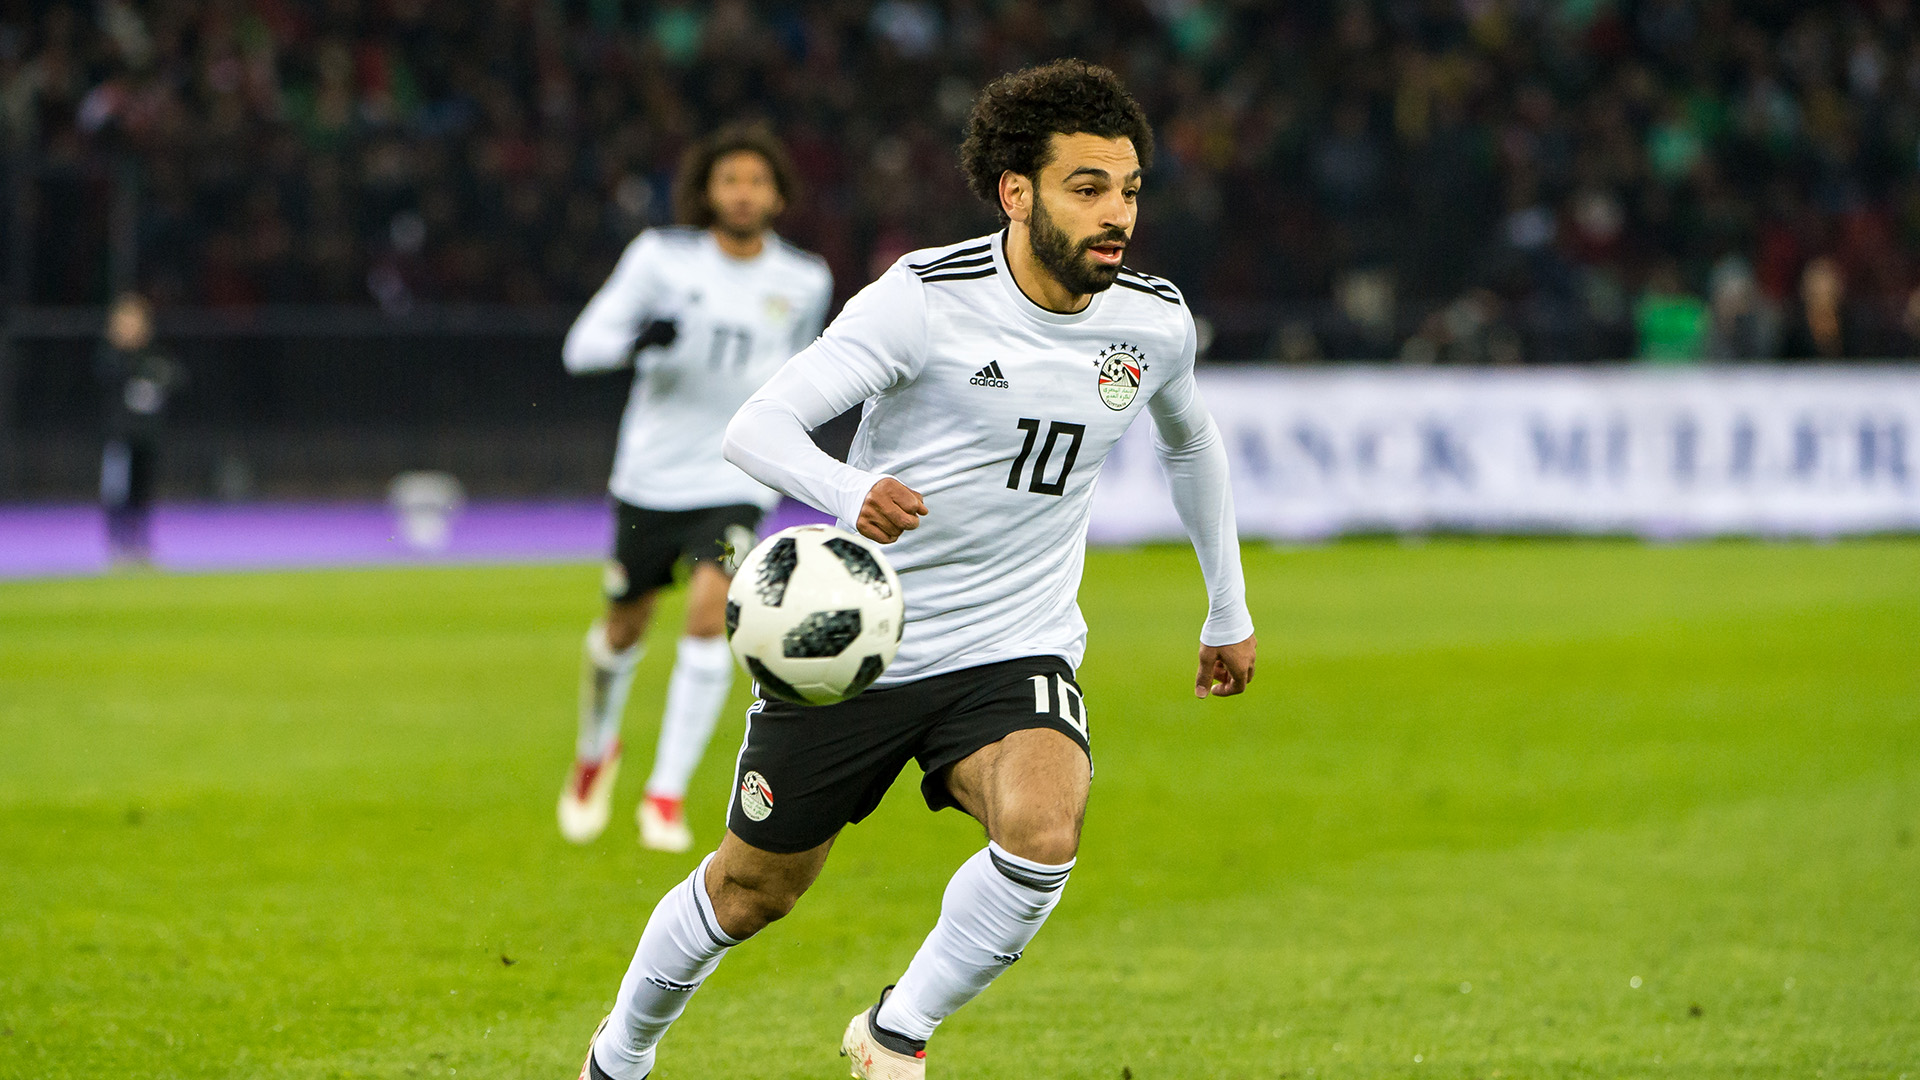 Egypt vs Uruguay; Can Mo Salah inspire the Pharaohs to victory?